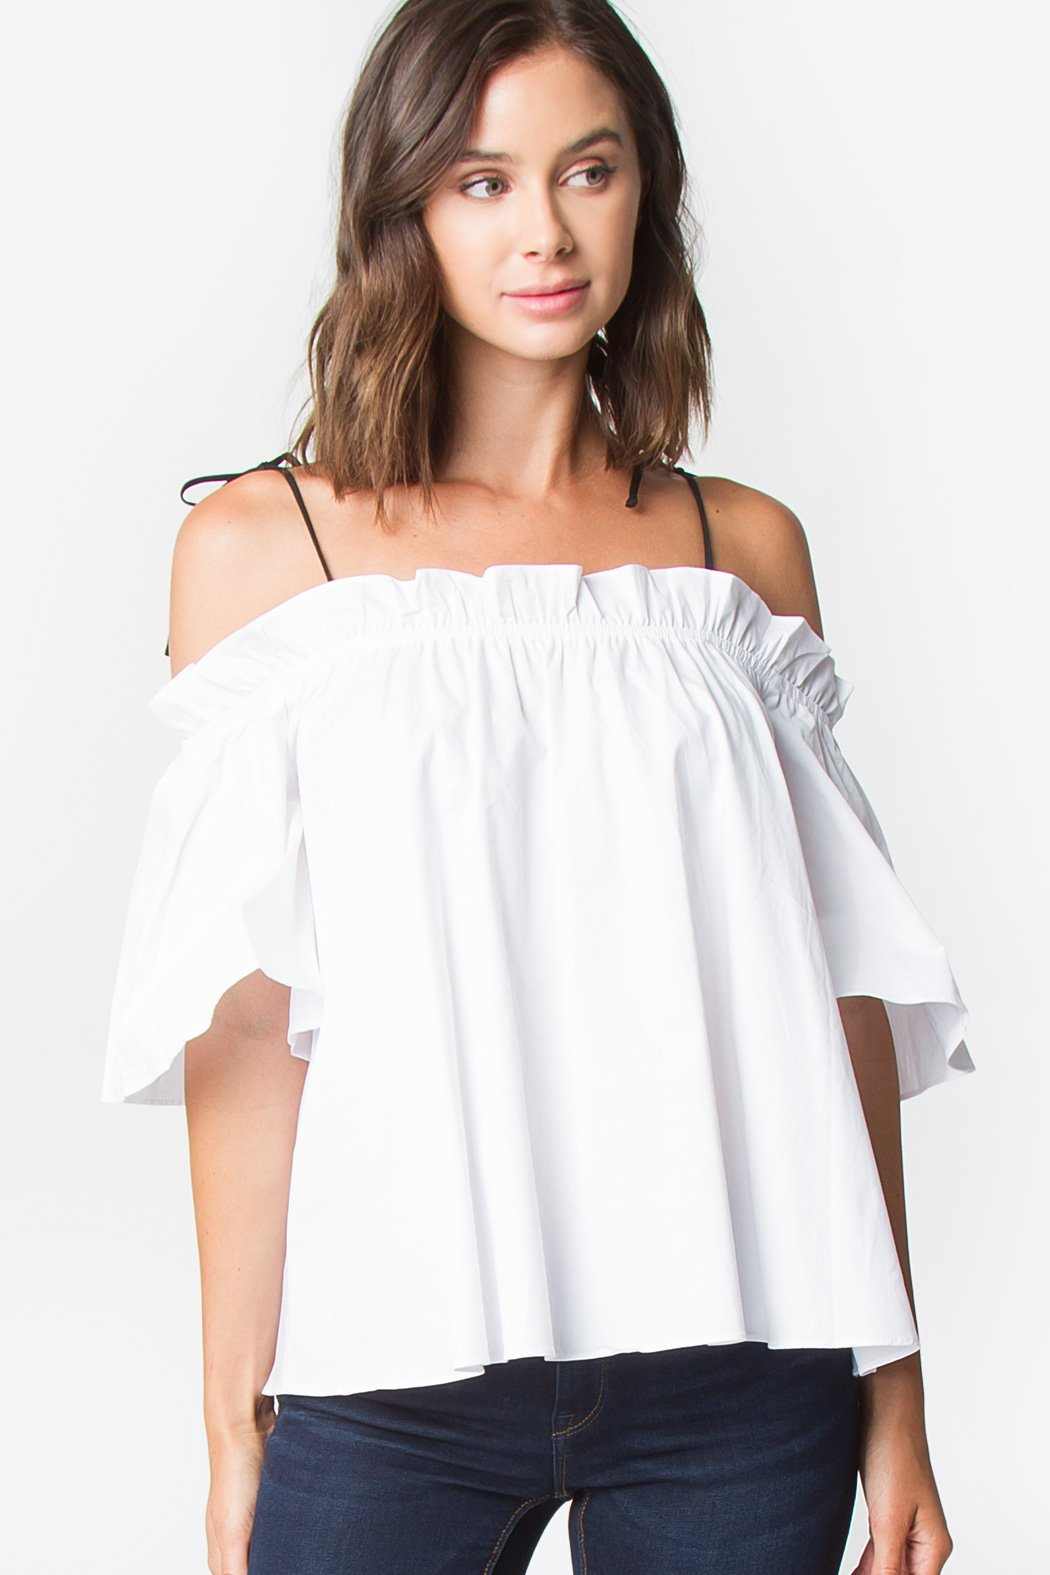 843392cf4a4bc Bree White Open Shoulder Top – Sugarlips